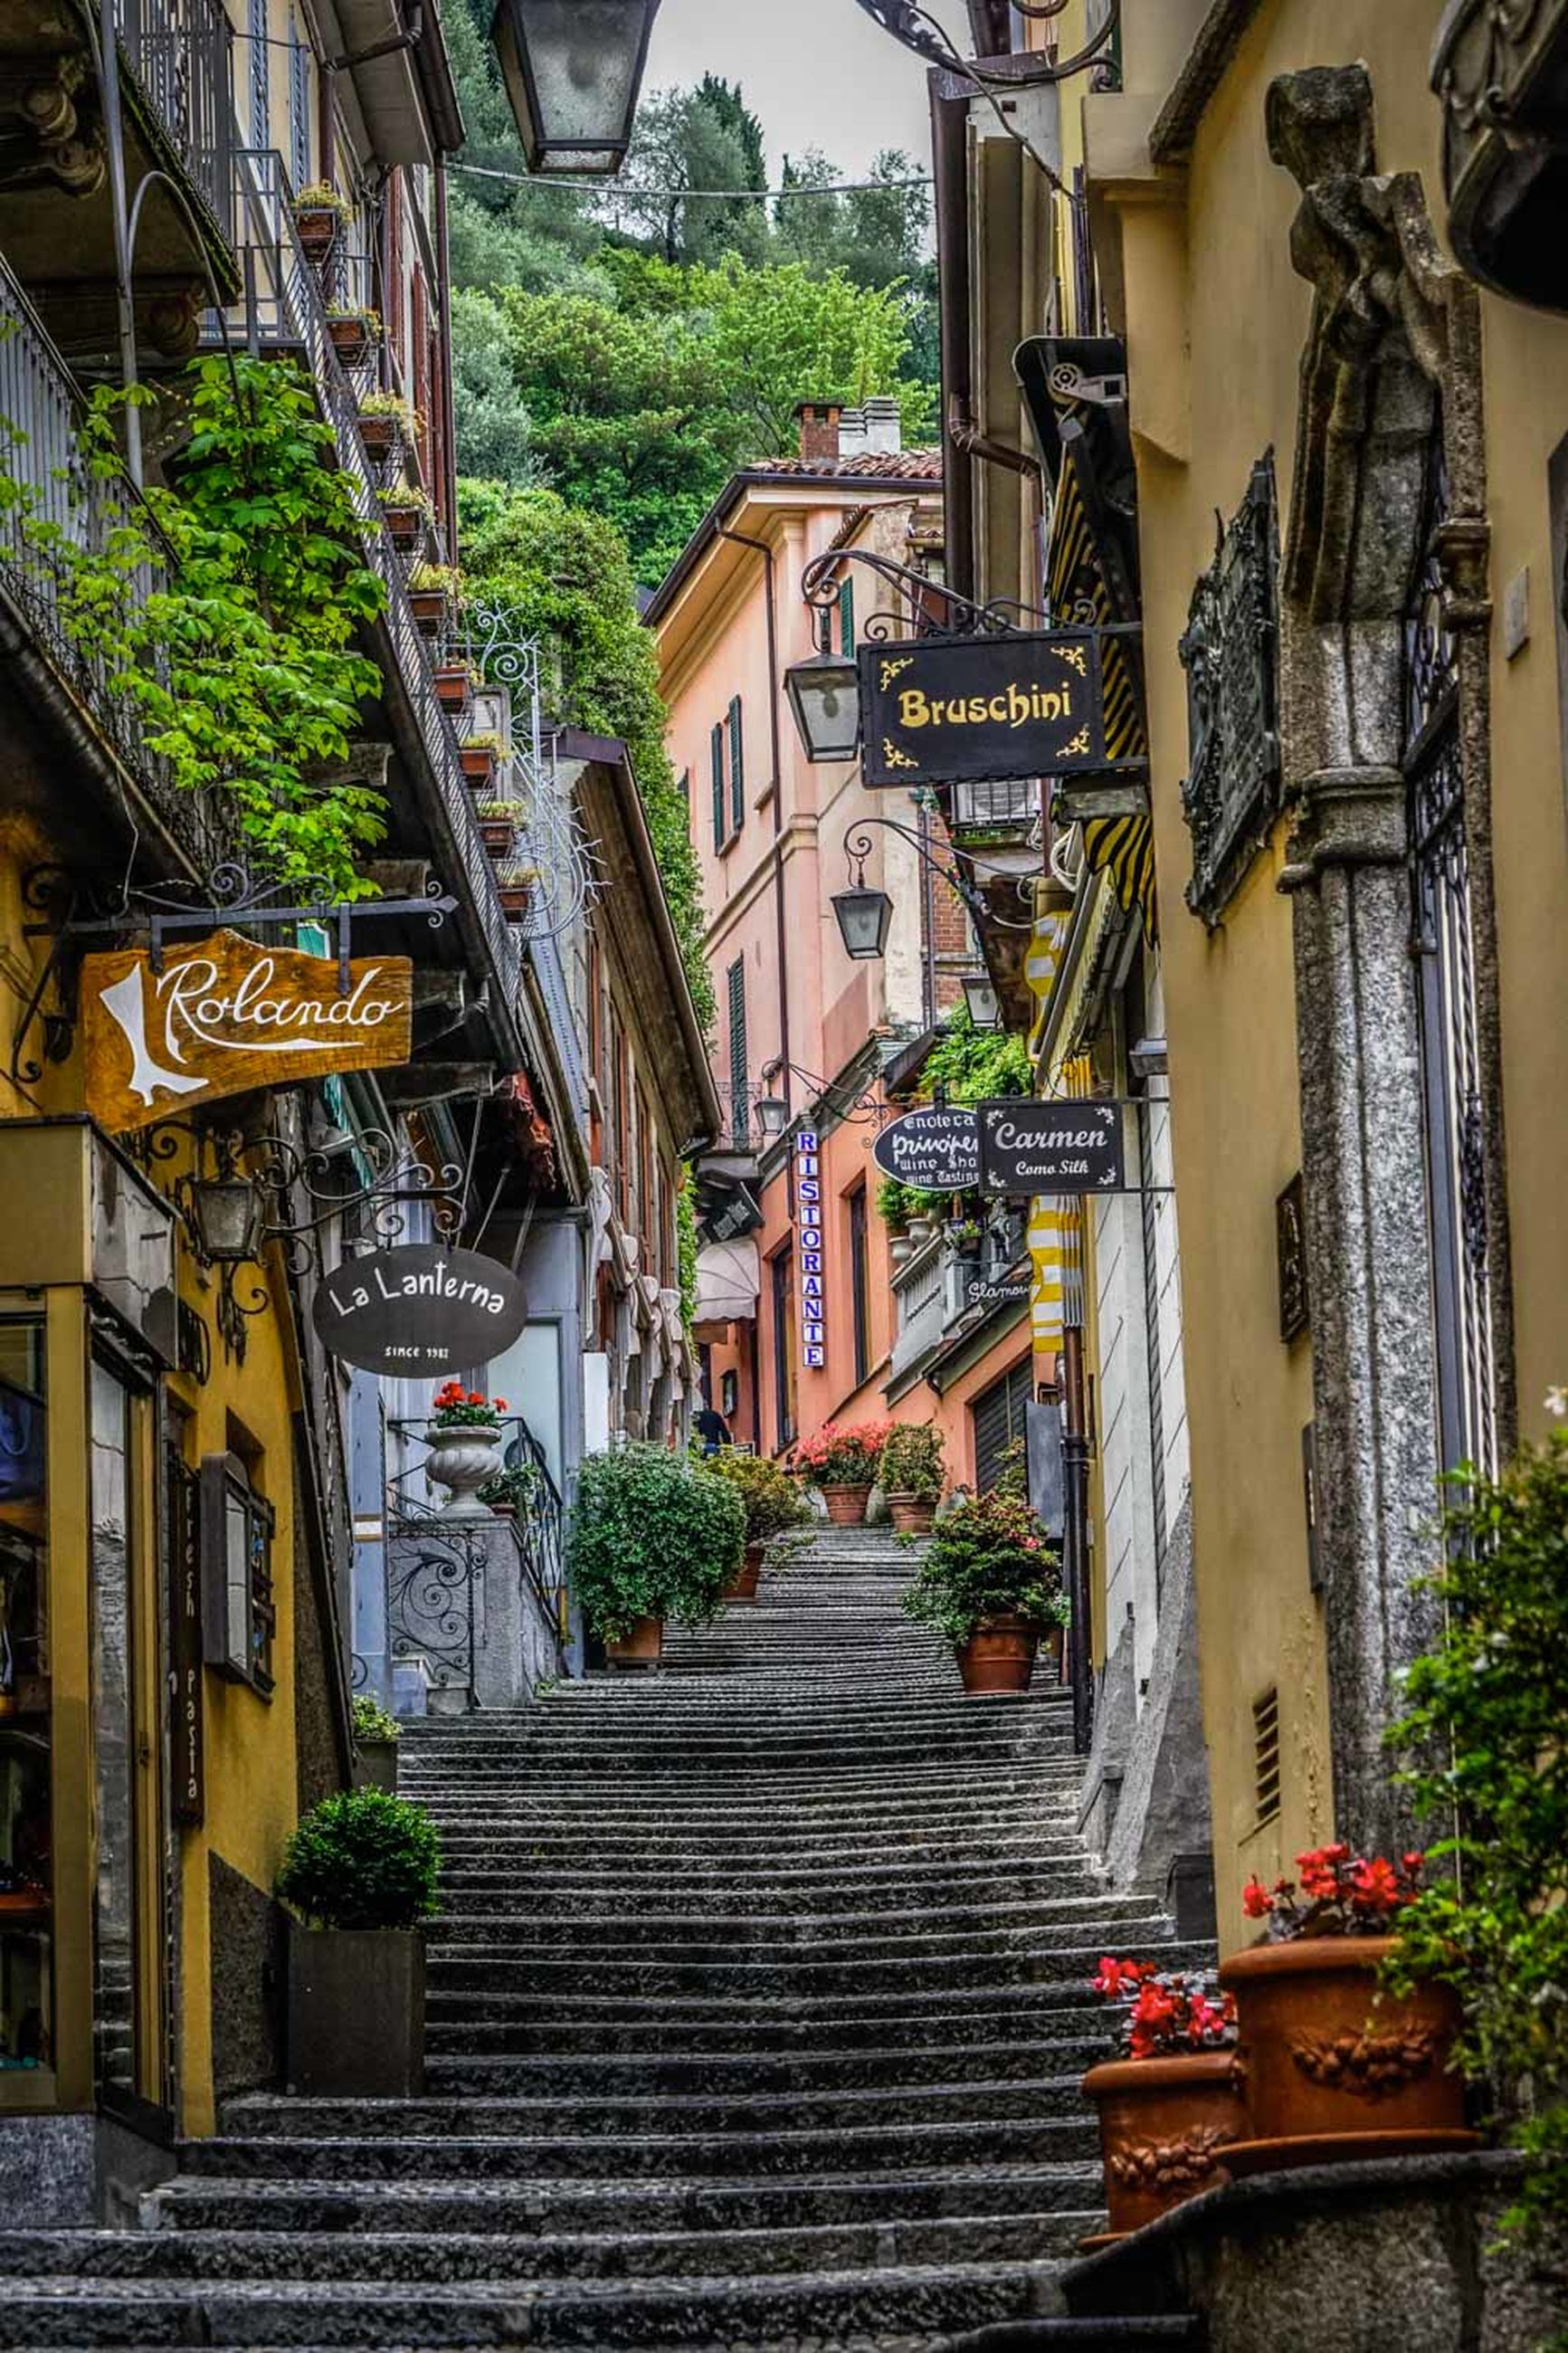 architecture, built structure, building exterior, building, staircase, the way forward, direction, plant, residential district, steps and staircases, day, no people, house, city, nature, footpath, outdoors, potted plant, old, narrow, alley